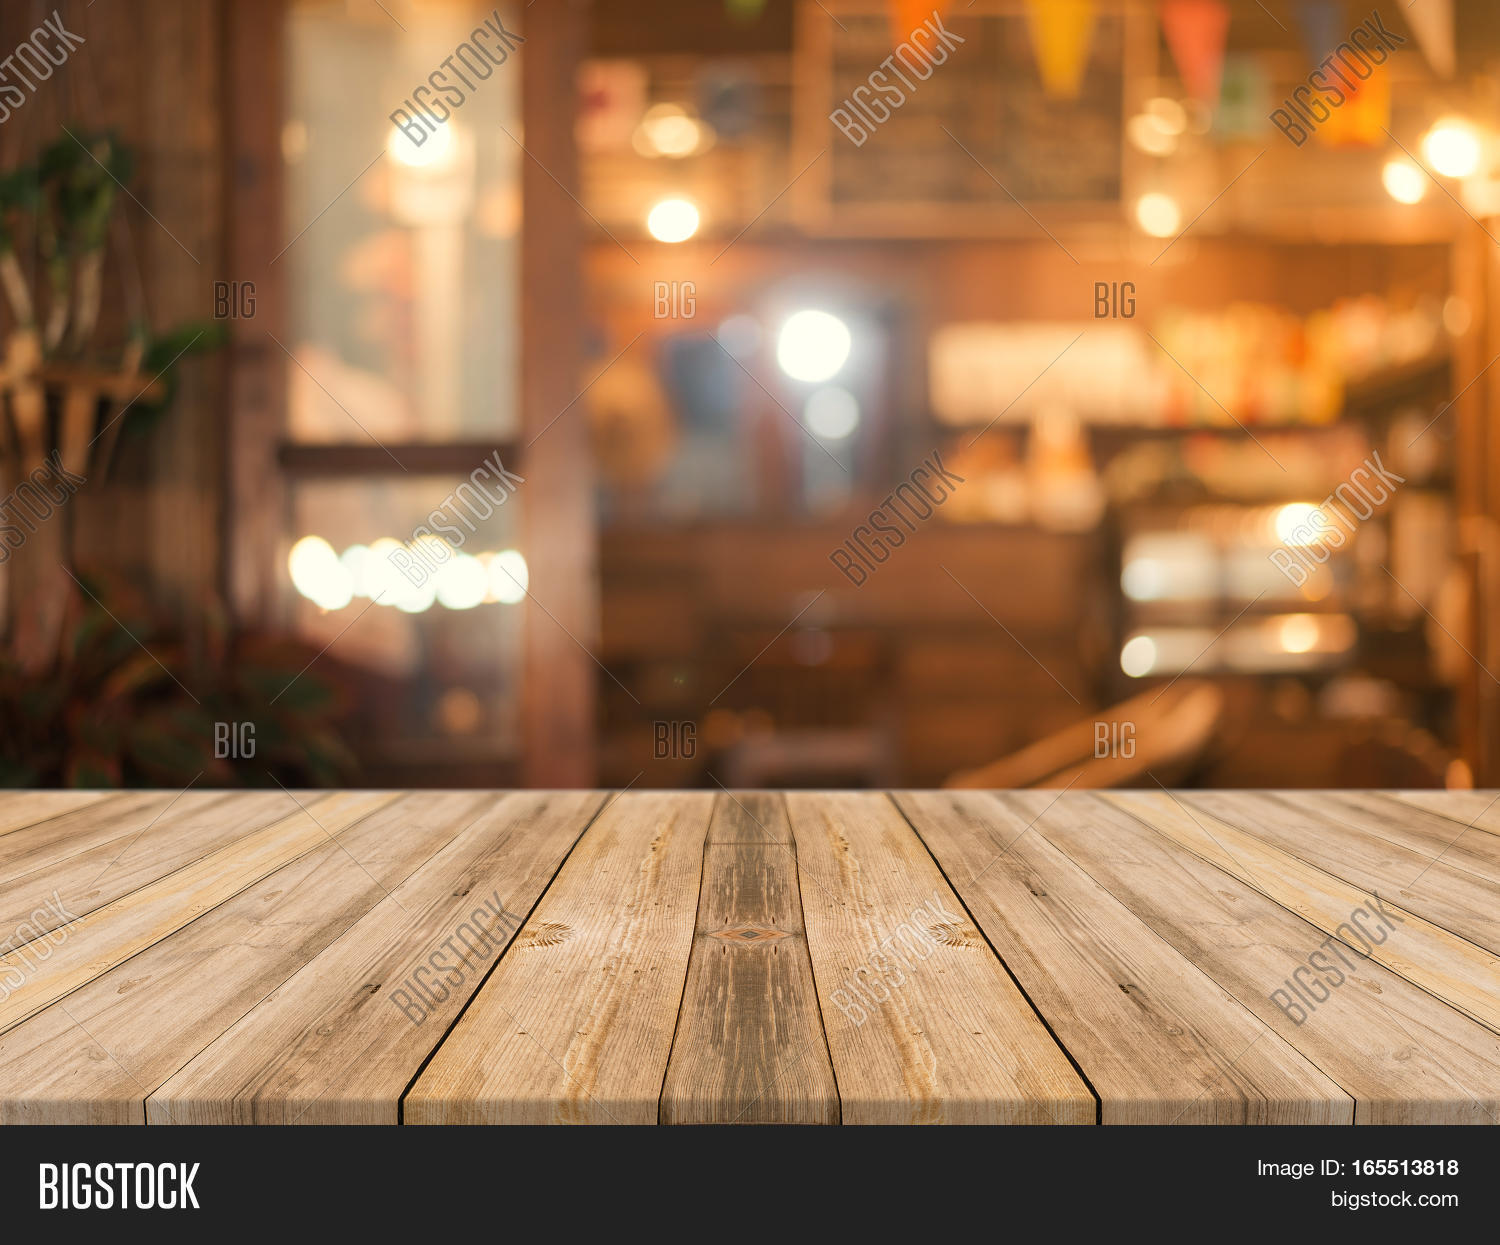 Wooden Board Empty Image amp Photo Free Trial Bigstock